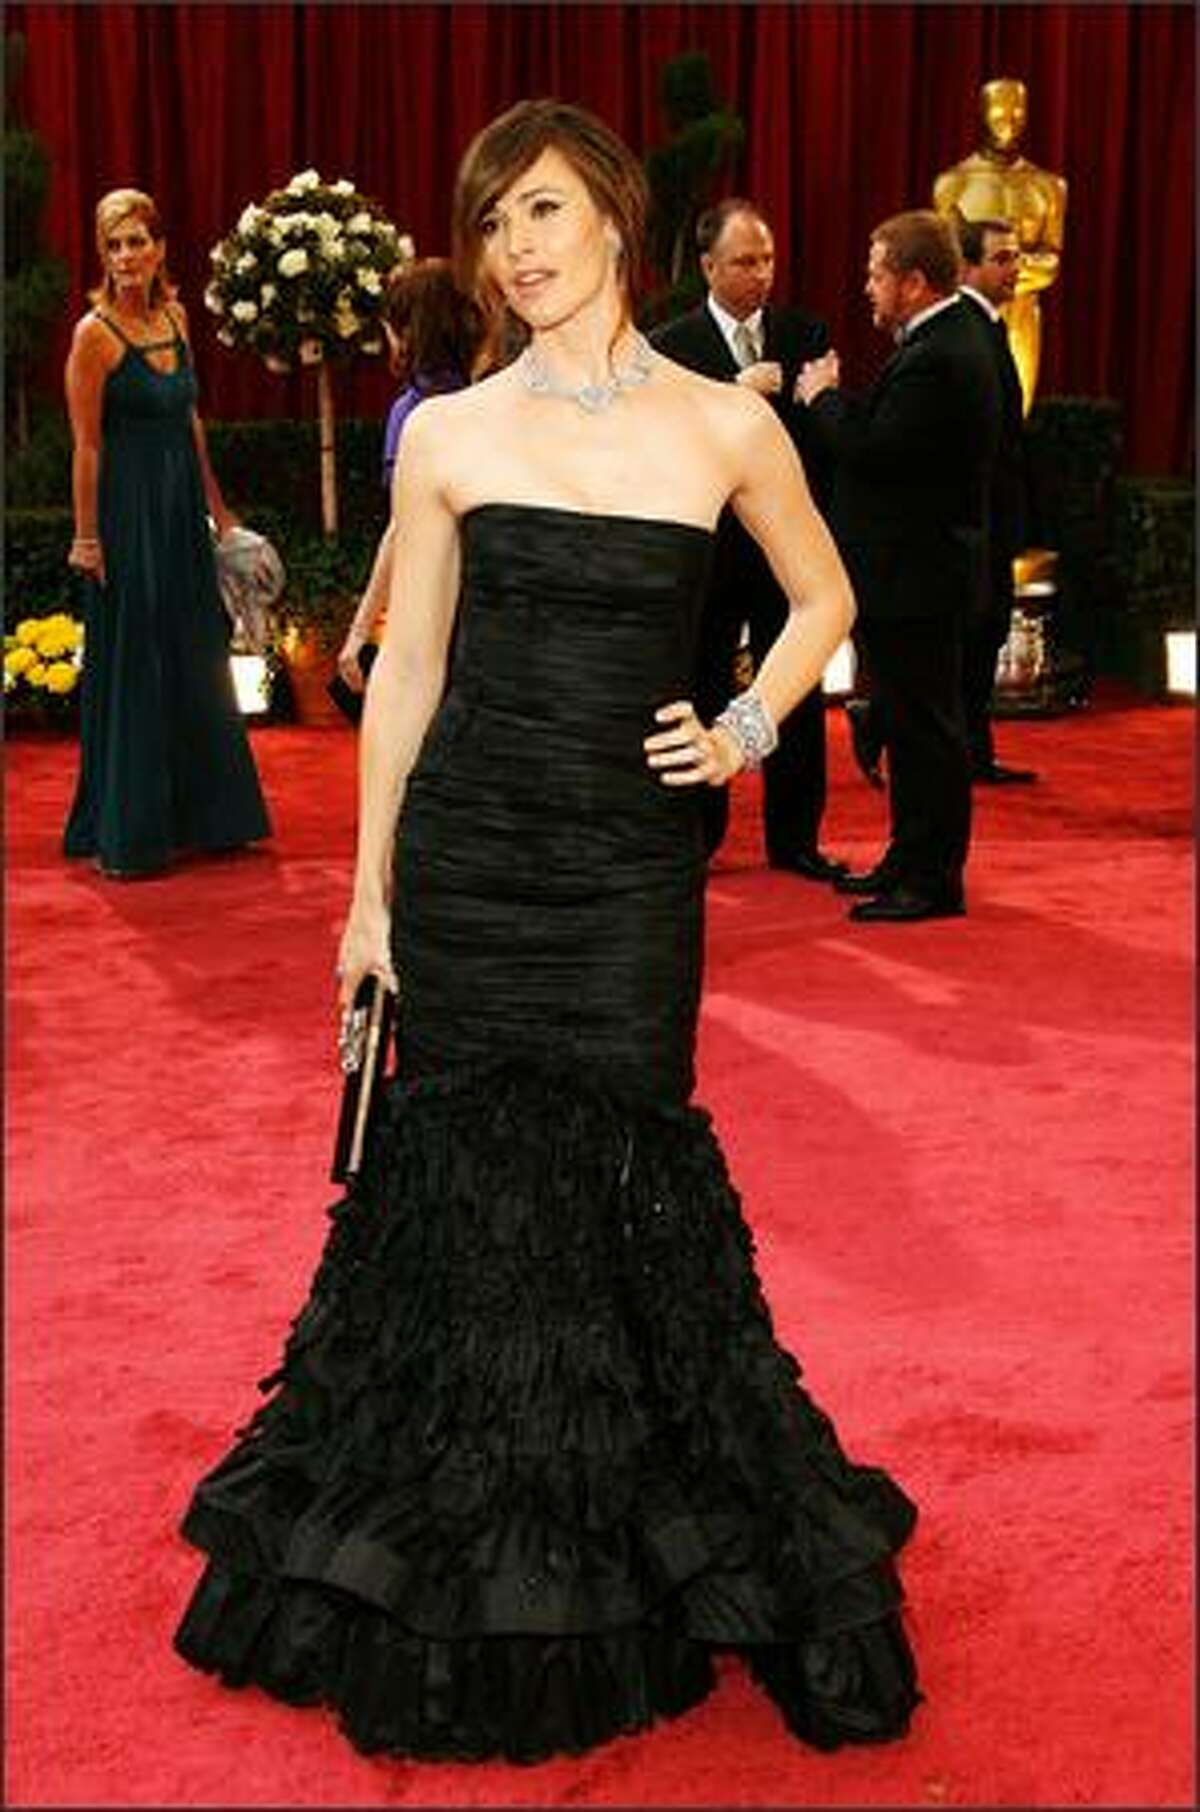 Actress Jennifer Garner arrives at the 80th Annual Academy Awards held at the Kodak Theatre in Hollywood, California.